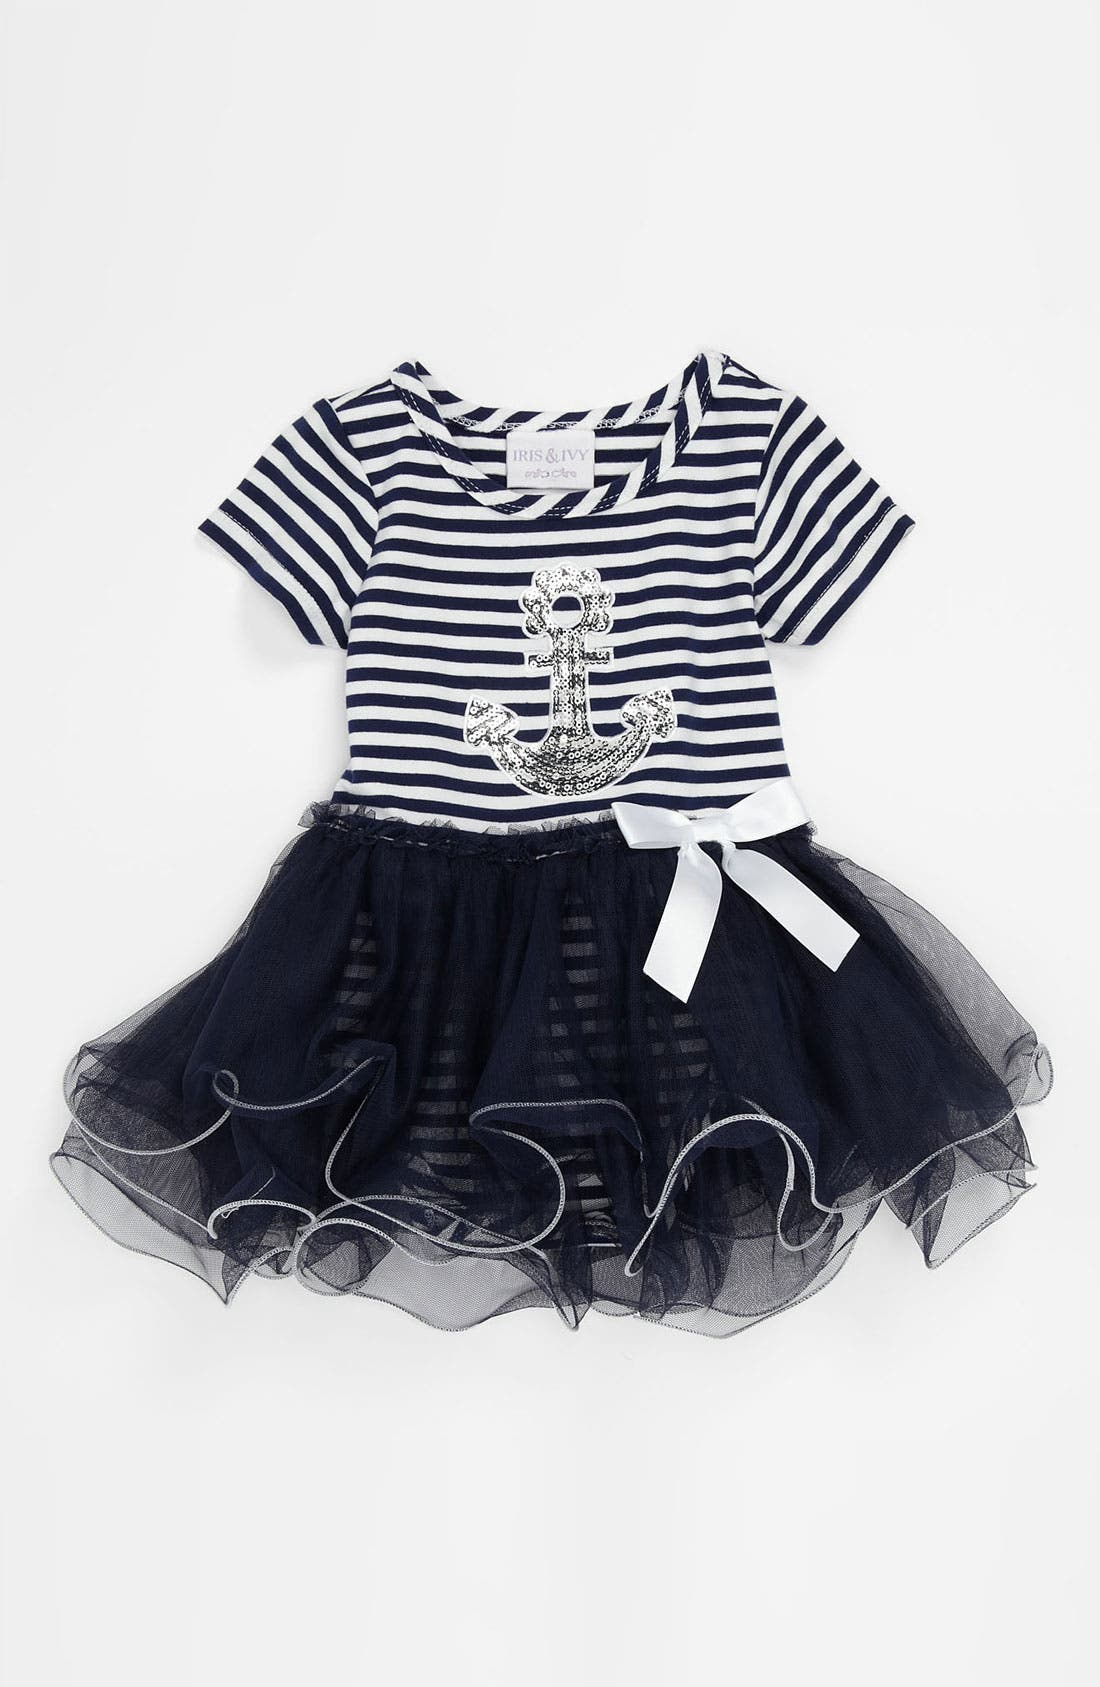 Main Image - Iris & Ivy Tutu Dress (Infant)